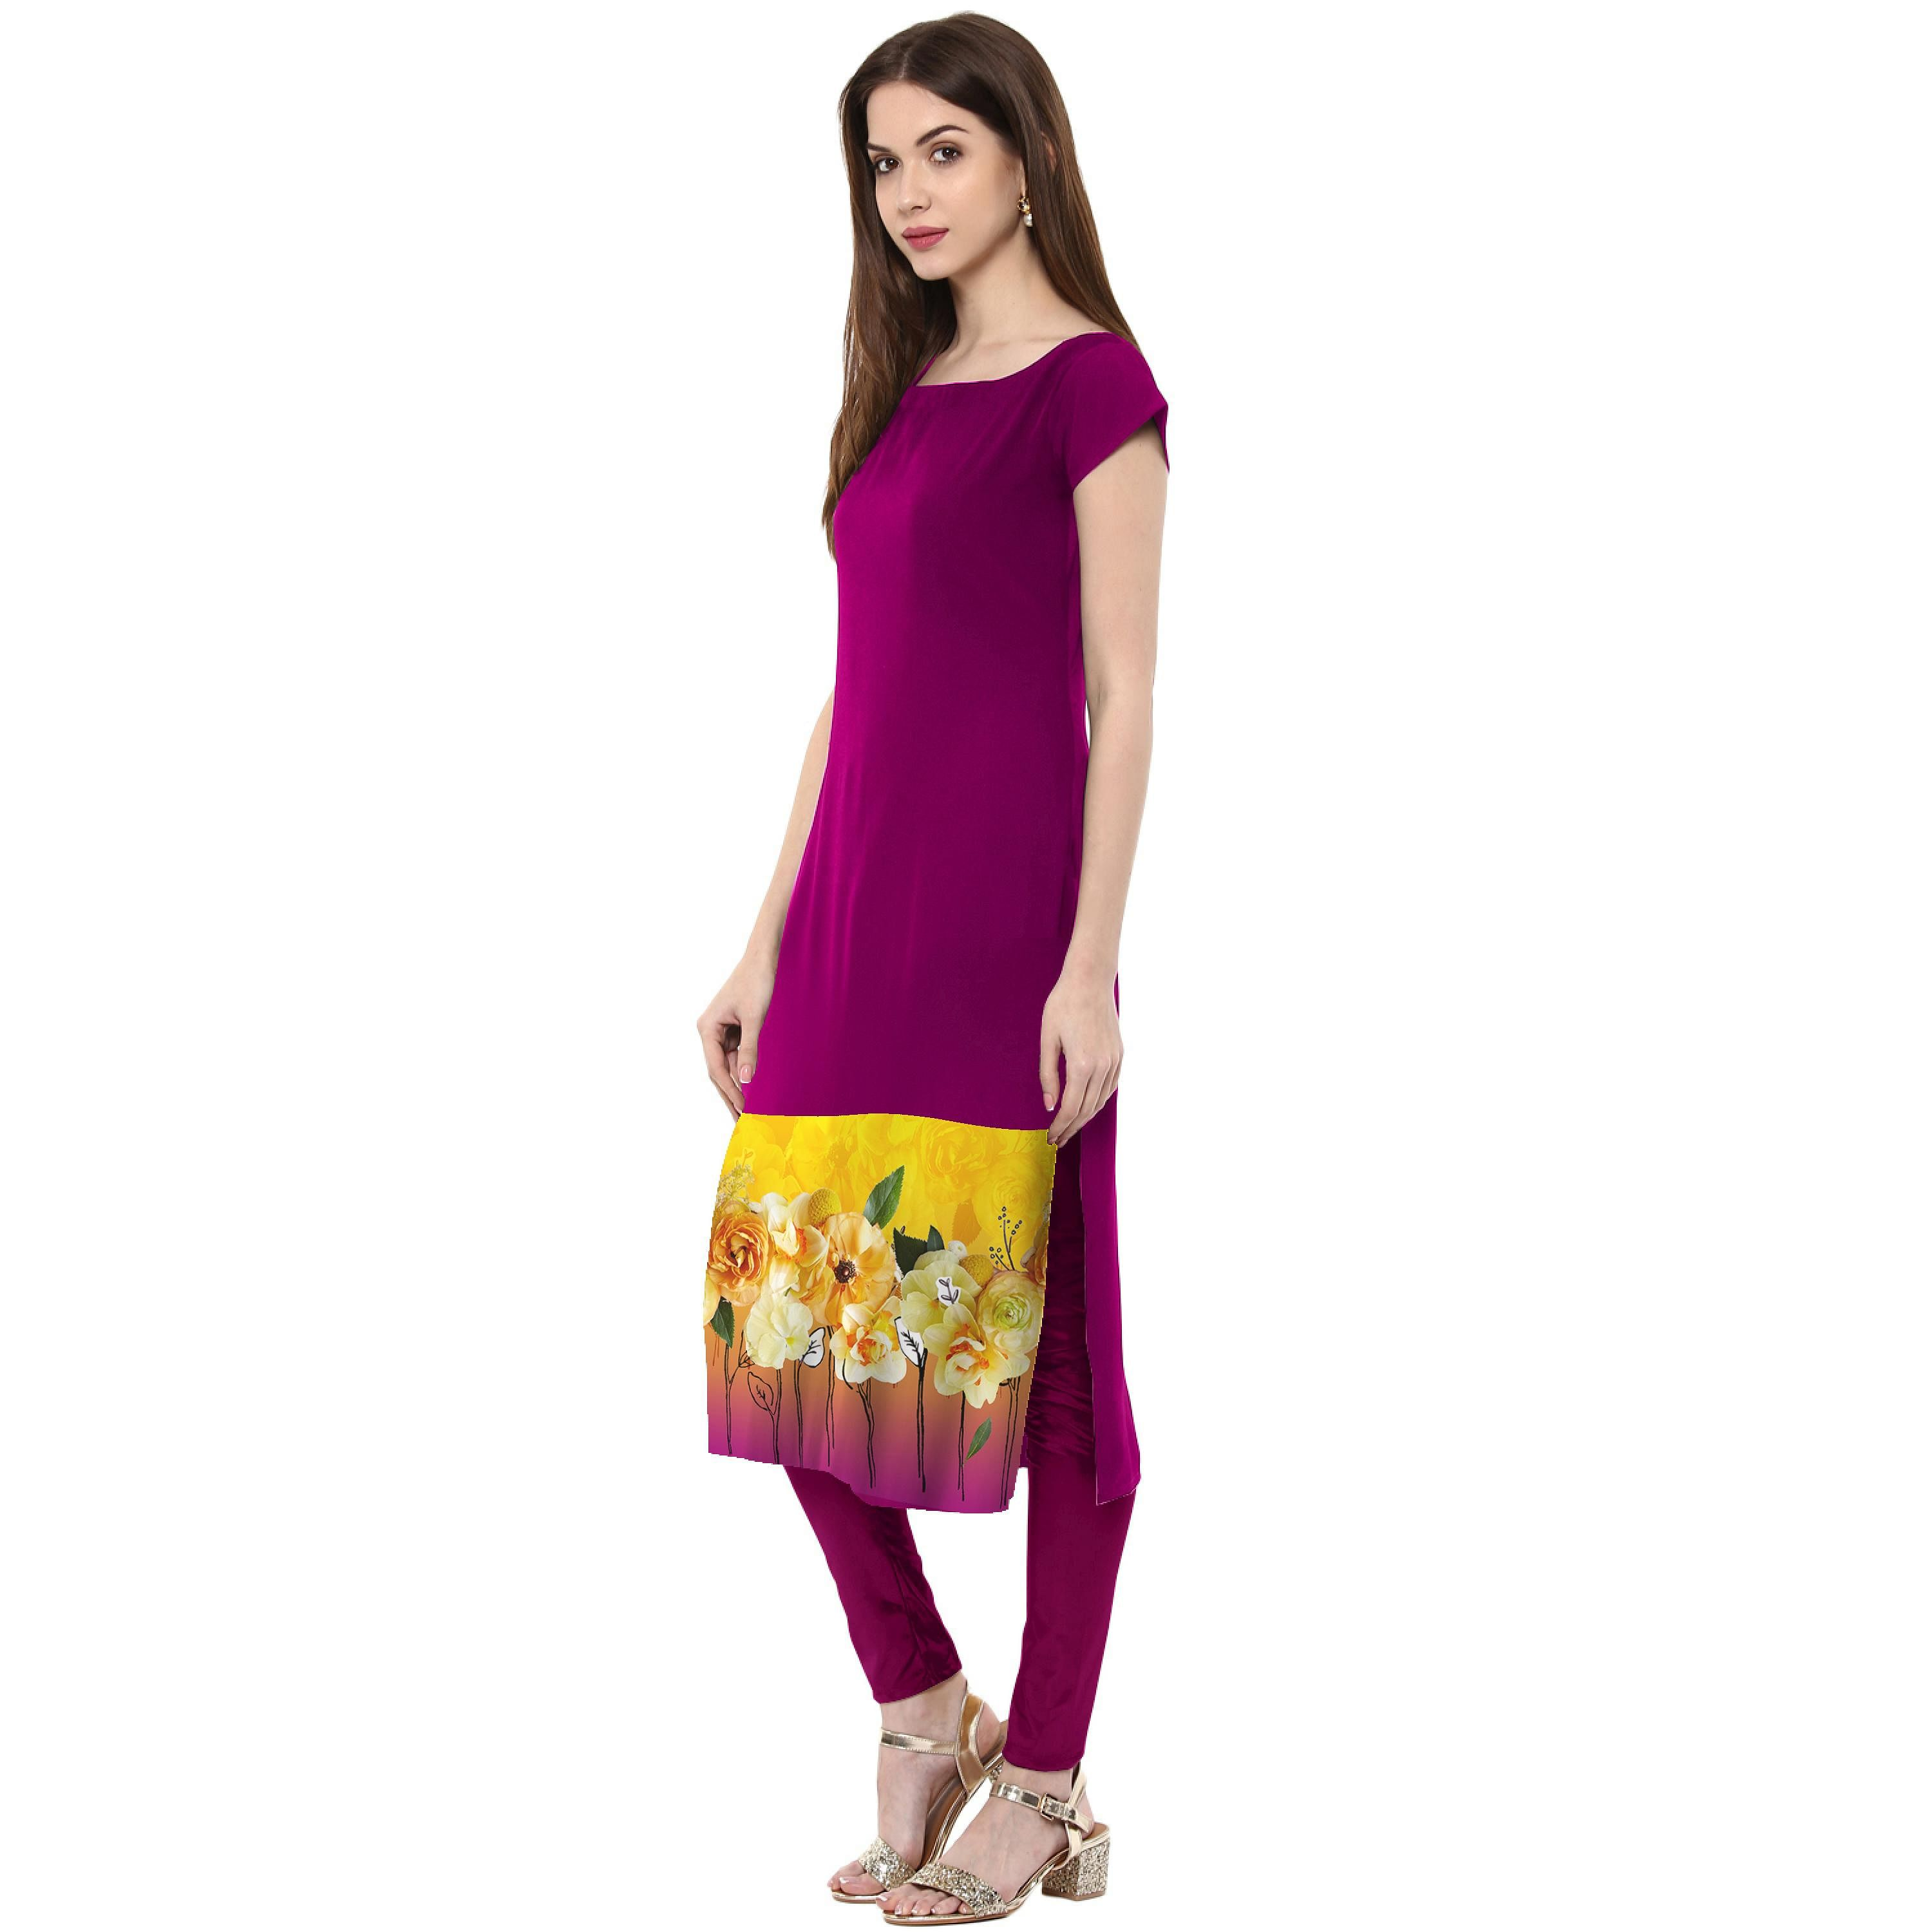 Ahalyaa - Women's Purple Colored Casual Wear Floral Printed Crepe Kurti